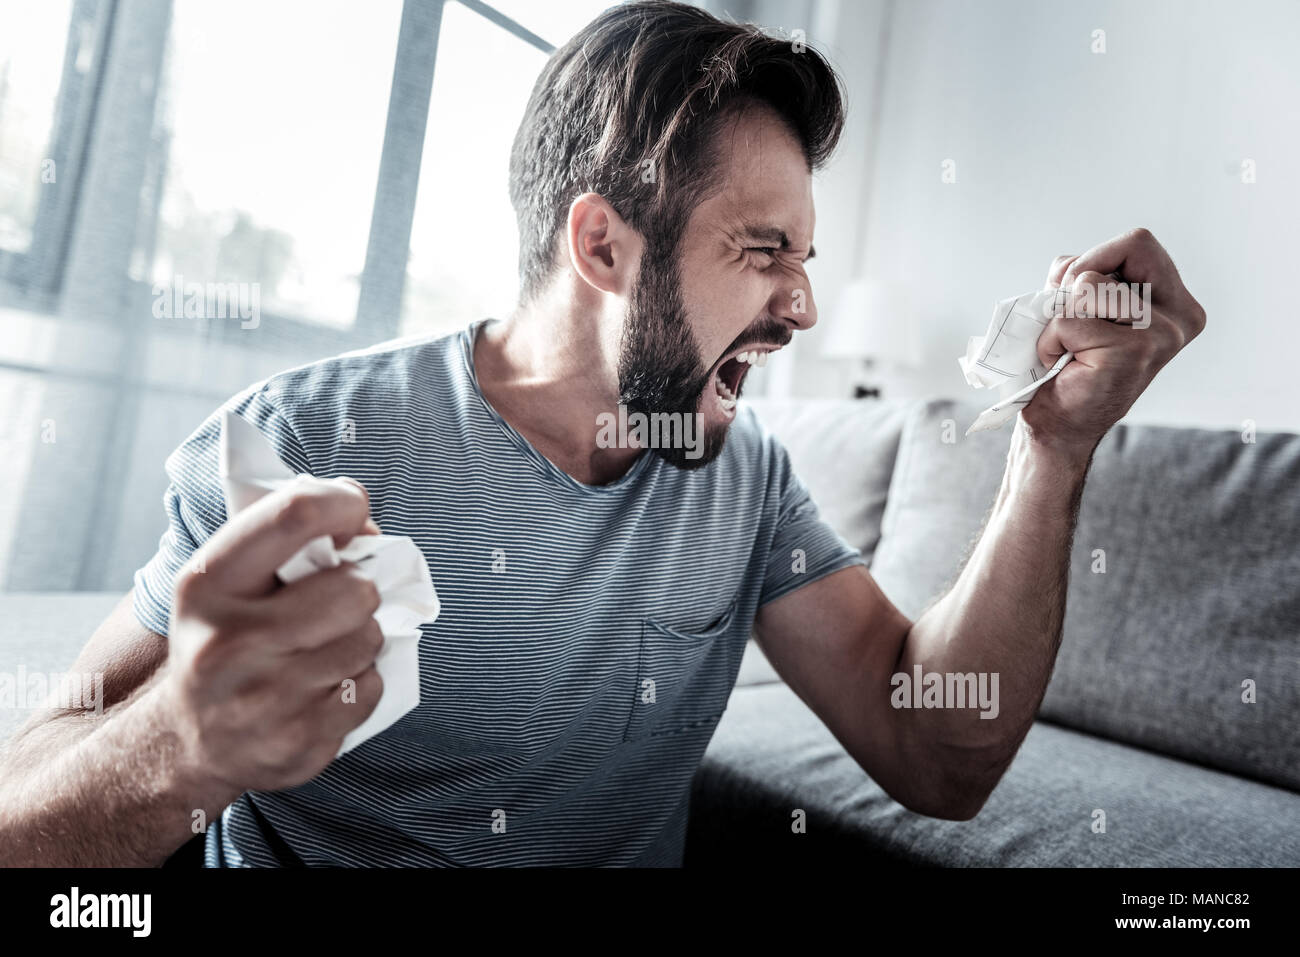 Angry unhappy man expressing his emotions - Stock Image